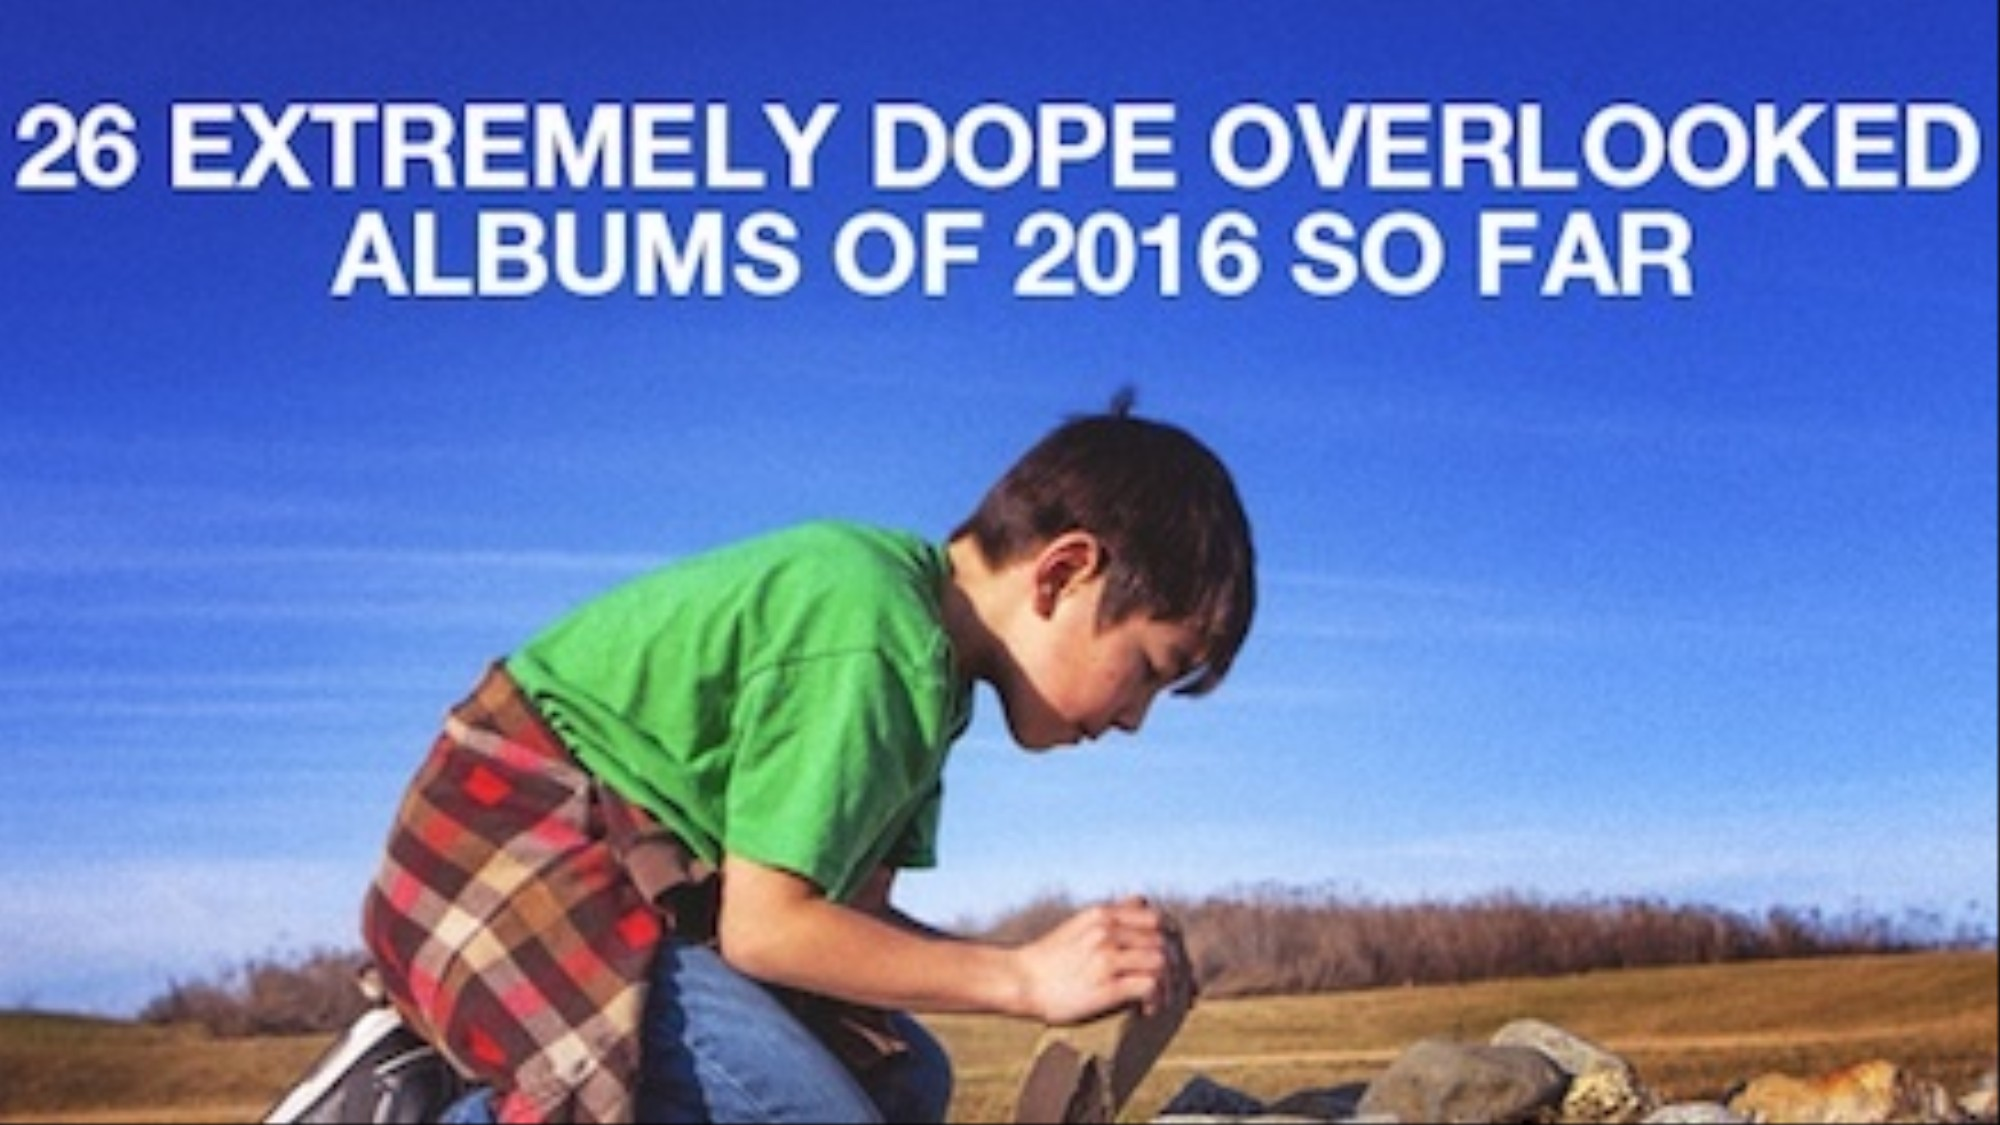 26 Extremely Dope Overlooked Albums of 2016 (So Far) - VICE